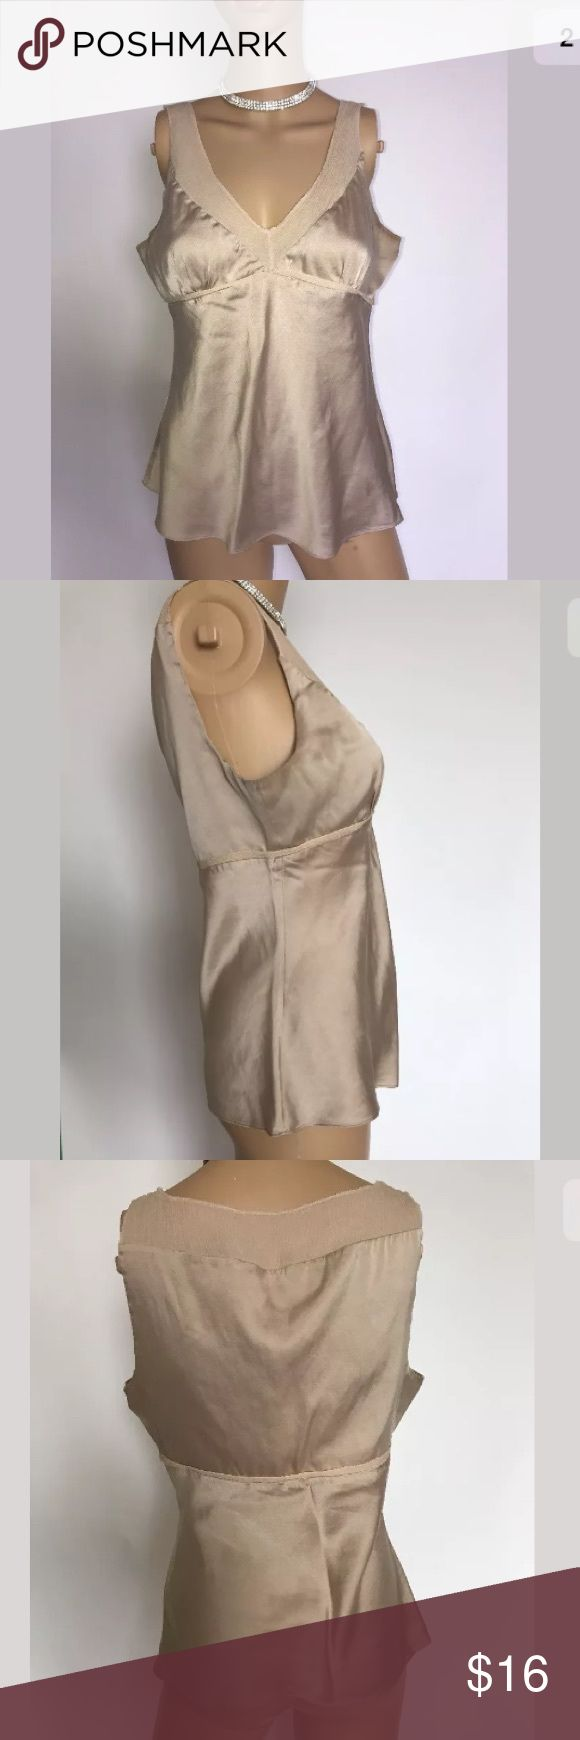 """Express Design Studio nude cami top M Express Design Studio nude cami top with concealed side zipper in size M.  Measurements laying flat are:  Bust: 15""""  Waist: 17""""  Length: 21""""  Material: 93% Silk 7% Spandex  Trim: 100% Silk  Made in China  Dry clean only express design studio Tops Camisoles"""